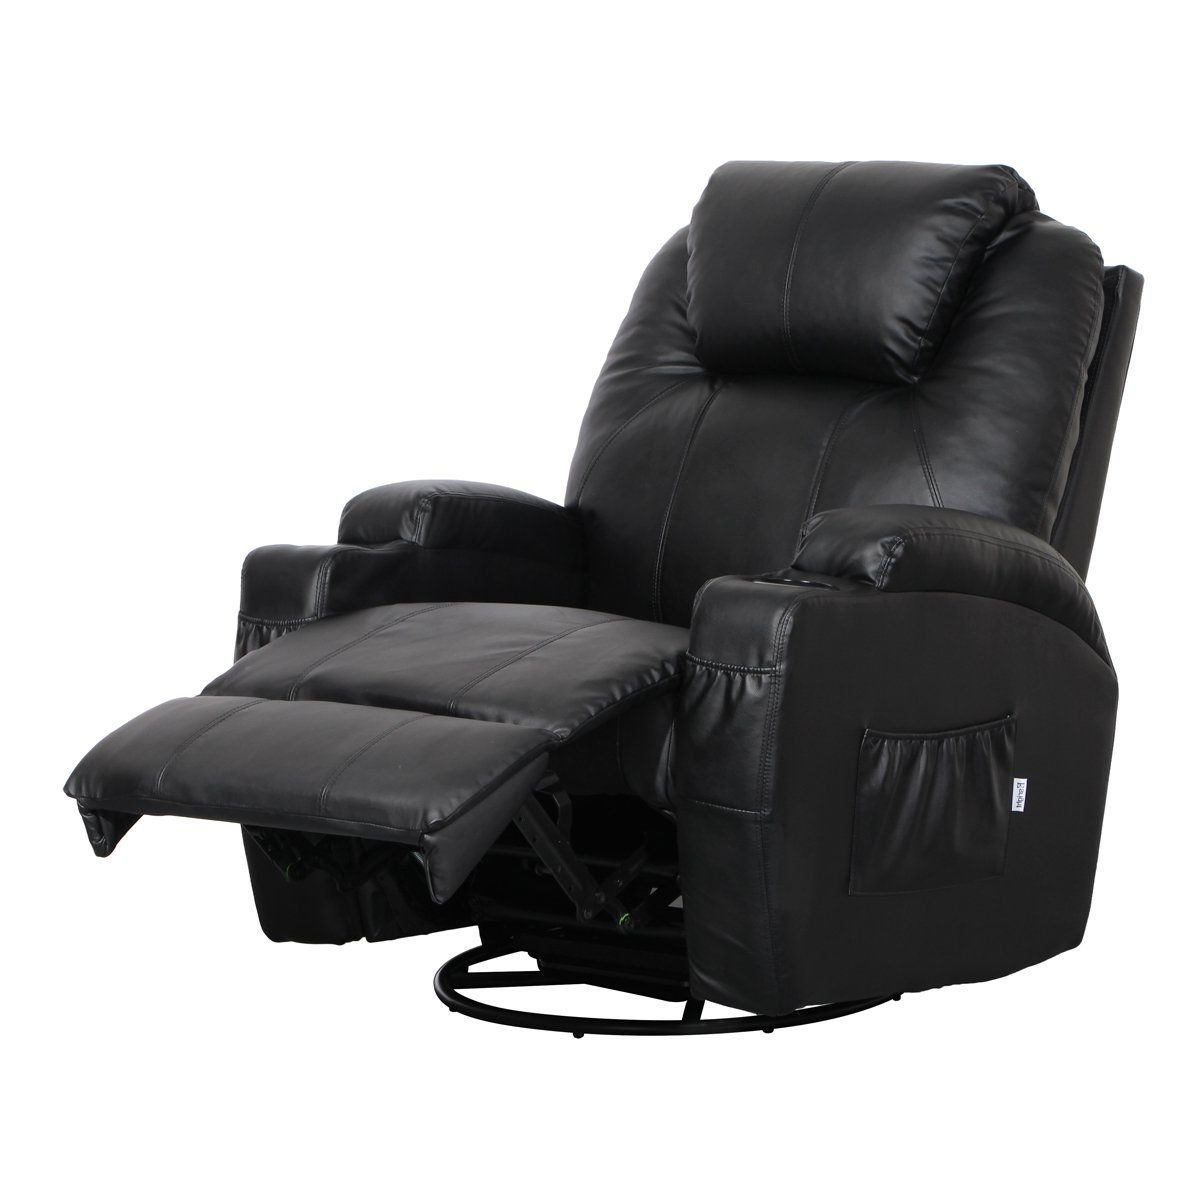 Details About Massage Therapy Lazy Boy Leather Recliner Chair Heat Club Seat Rocker 360 Swive